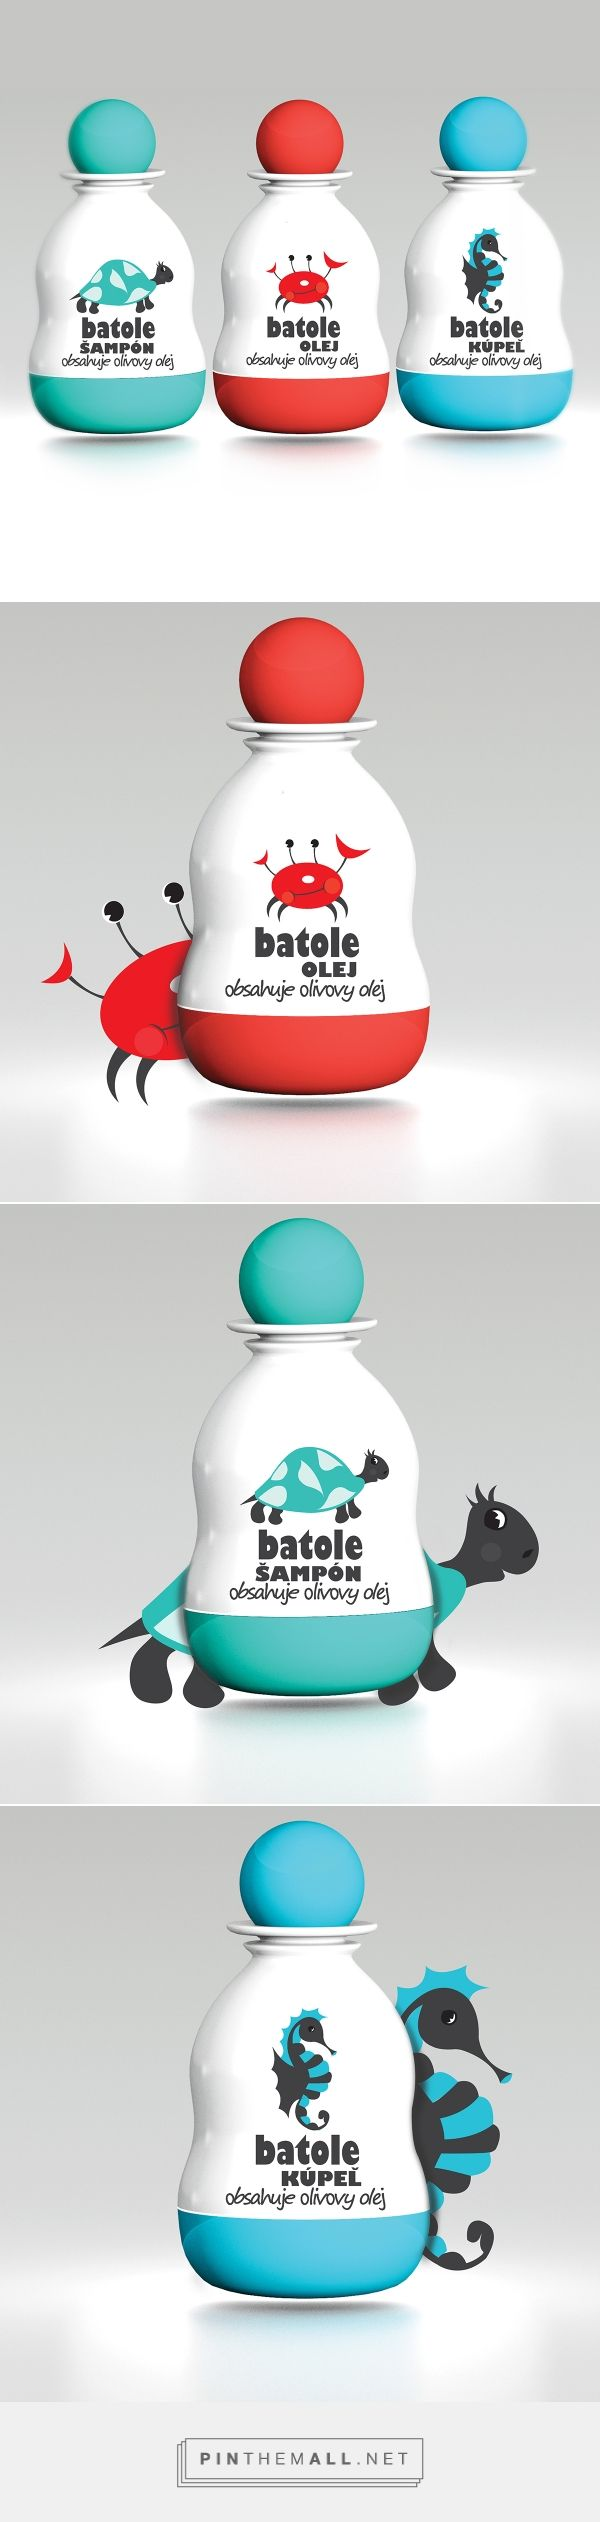 Art direction, graphic design and packaging for baby body products on Behance by Creative by Definition Bucharest, Romania curated by Packaging Diva PD. A selection of funny illustrations for the packaging smile file : )